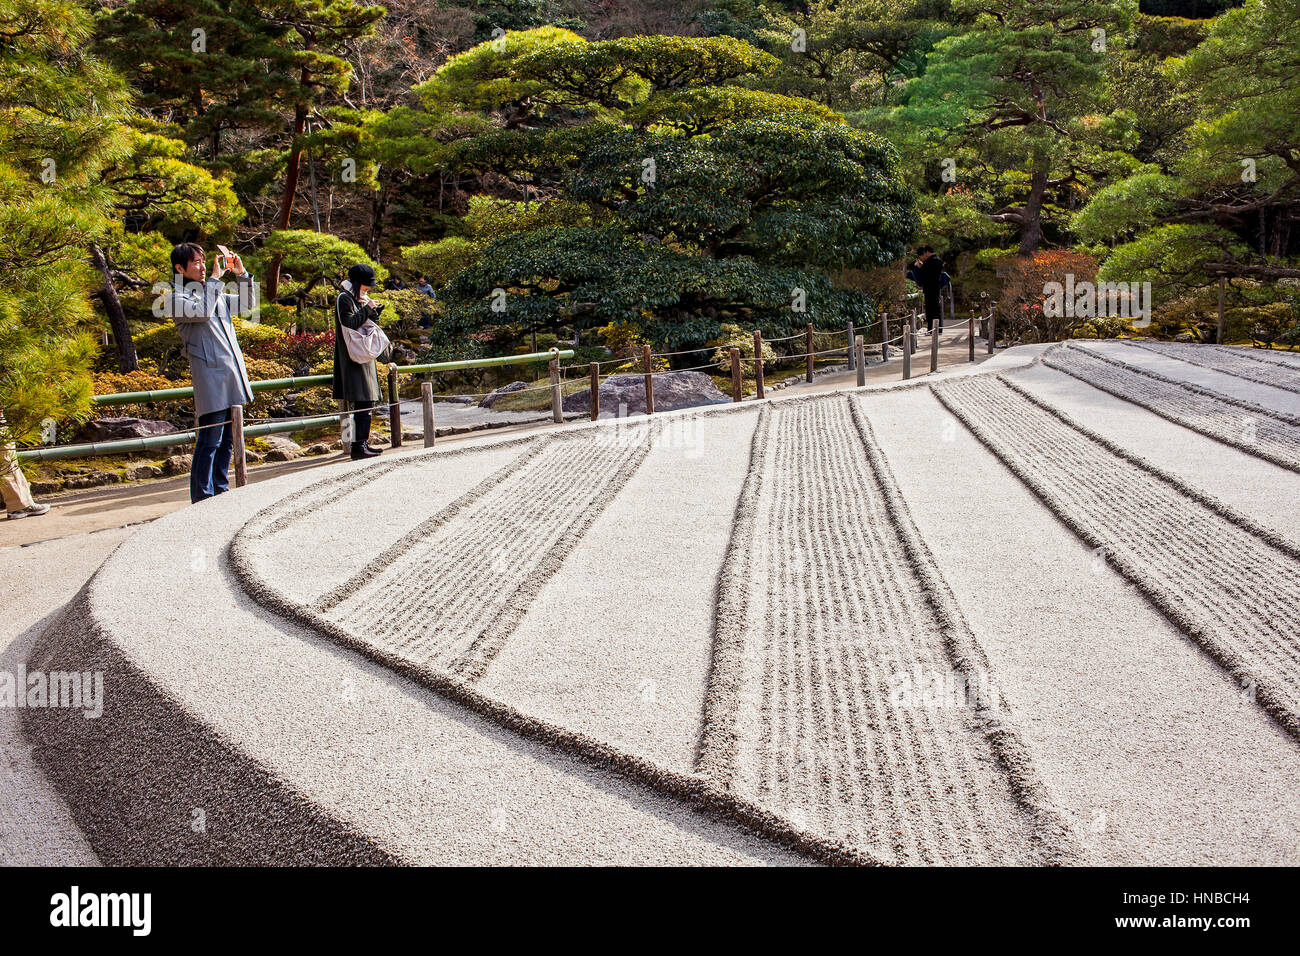 Zen garden symbolizing Mount Fuji and the sea, in Ginkaku ji temple, Kyoto, Kansai, Japan - Stock Image